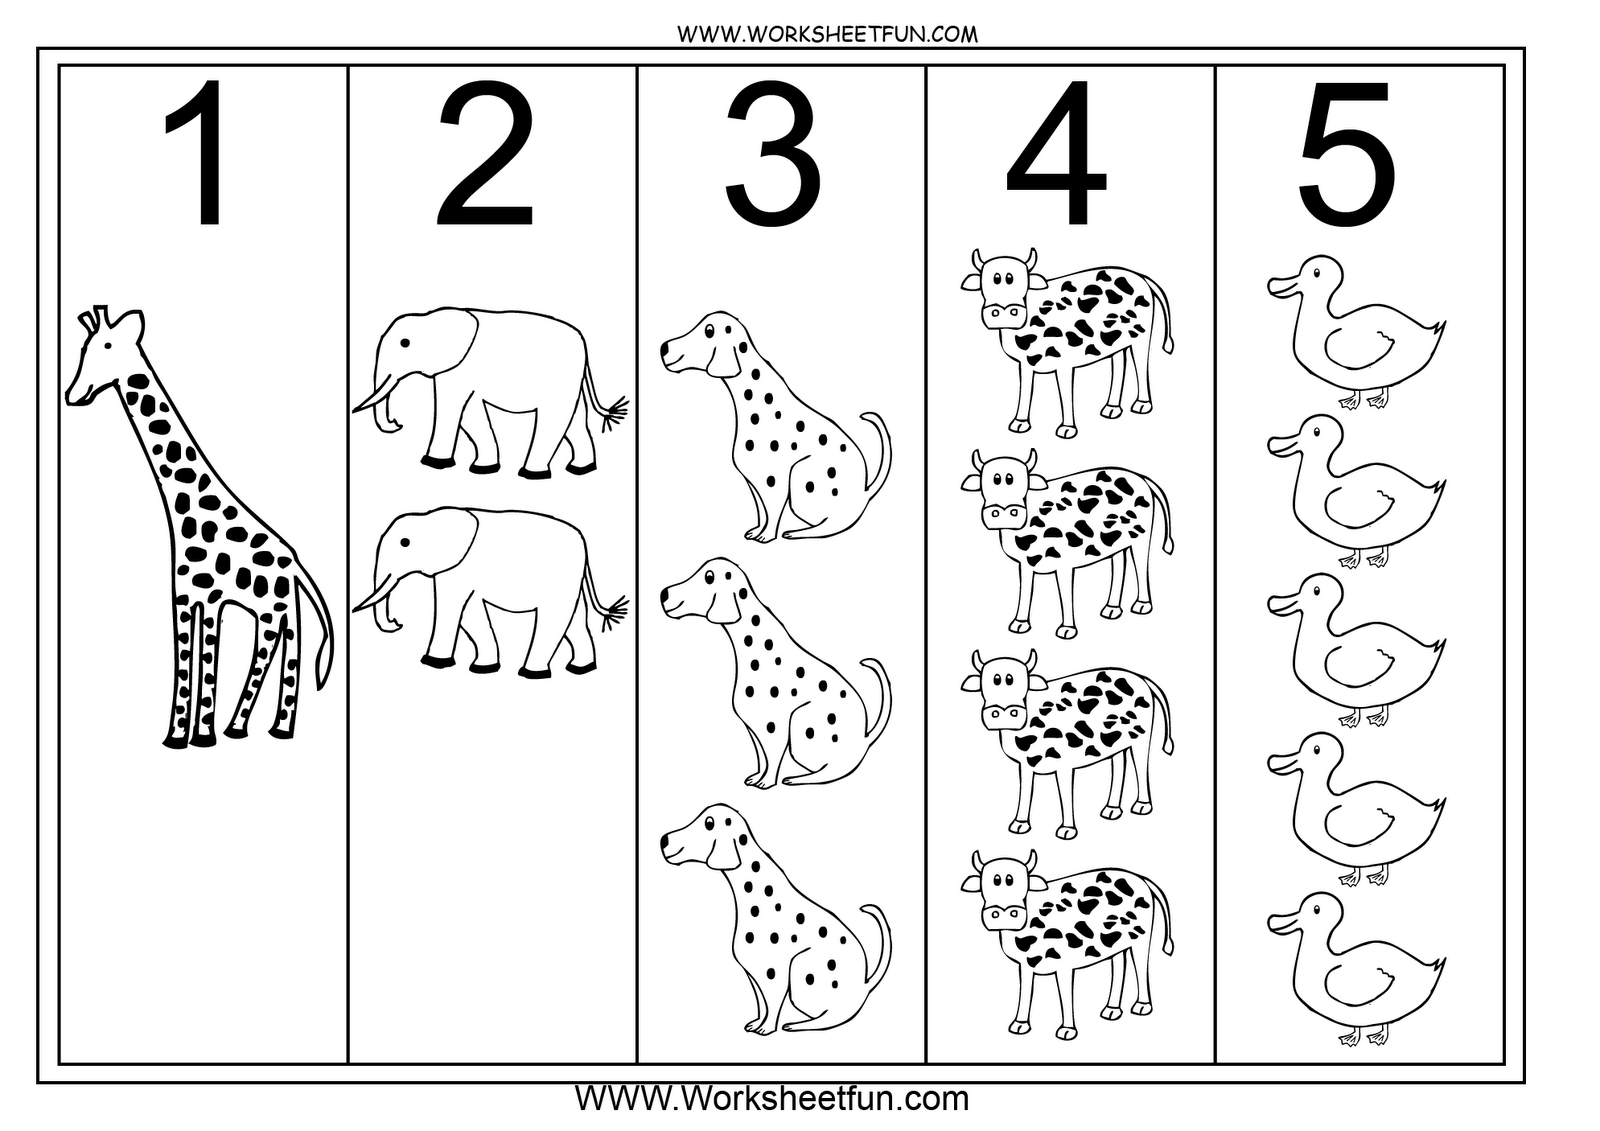 Worksheet Free Printable Numbers 1-10 number coloring pages for kids 1 10 sheets our 1000 images about preschool numbers on pinterest words worksheets and preschool